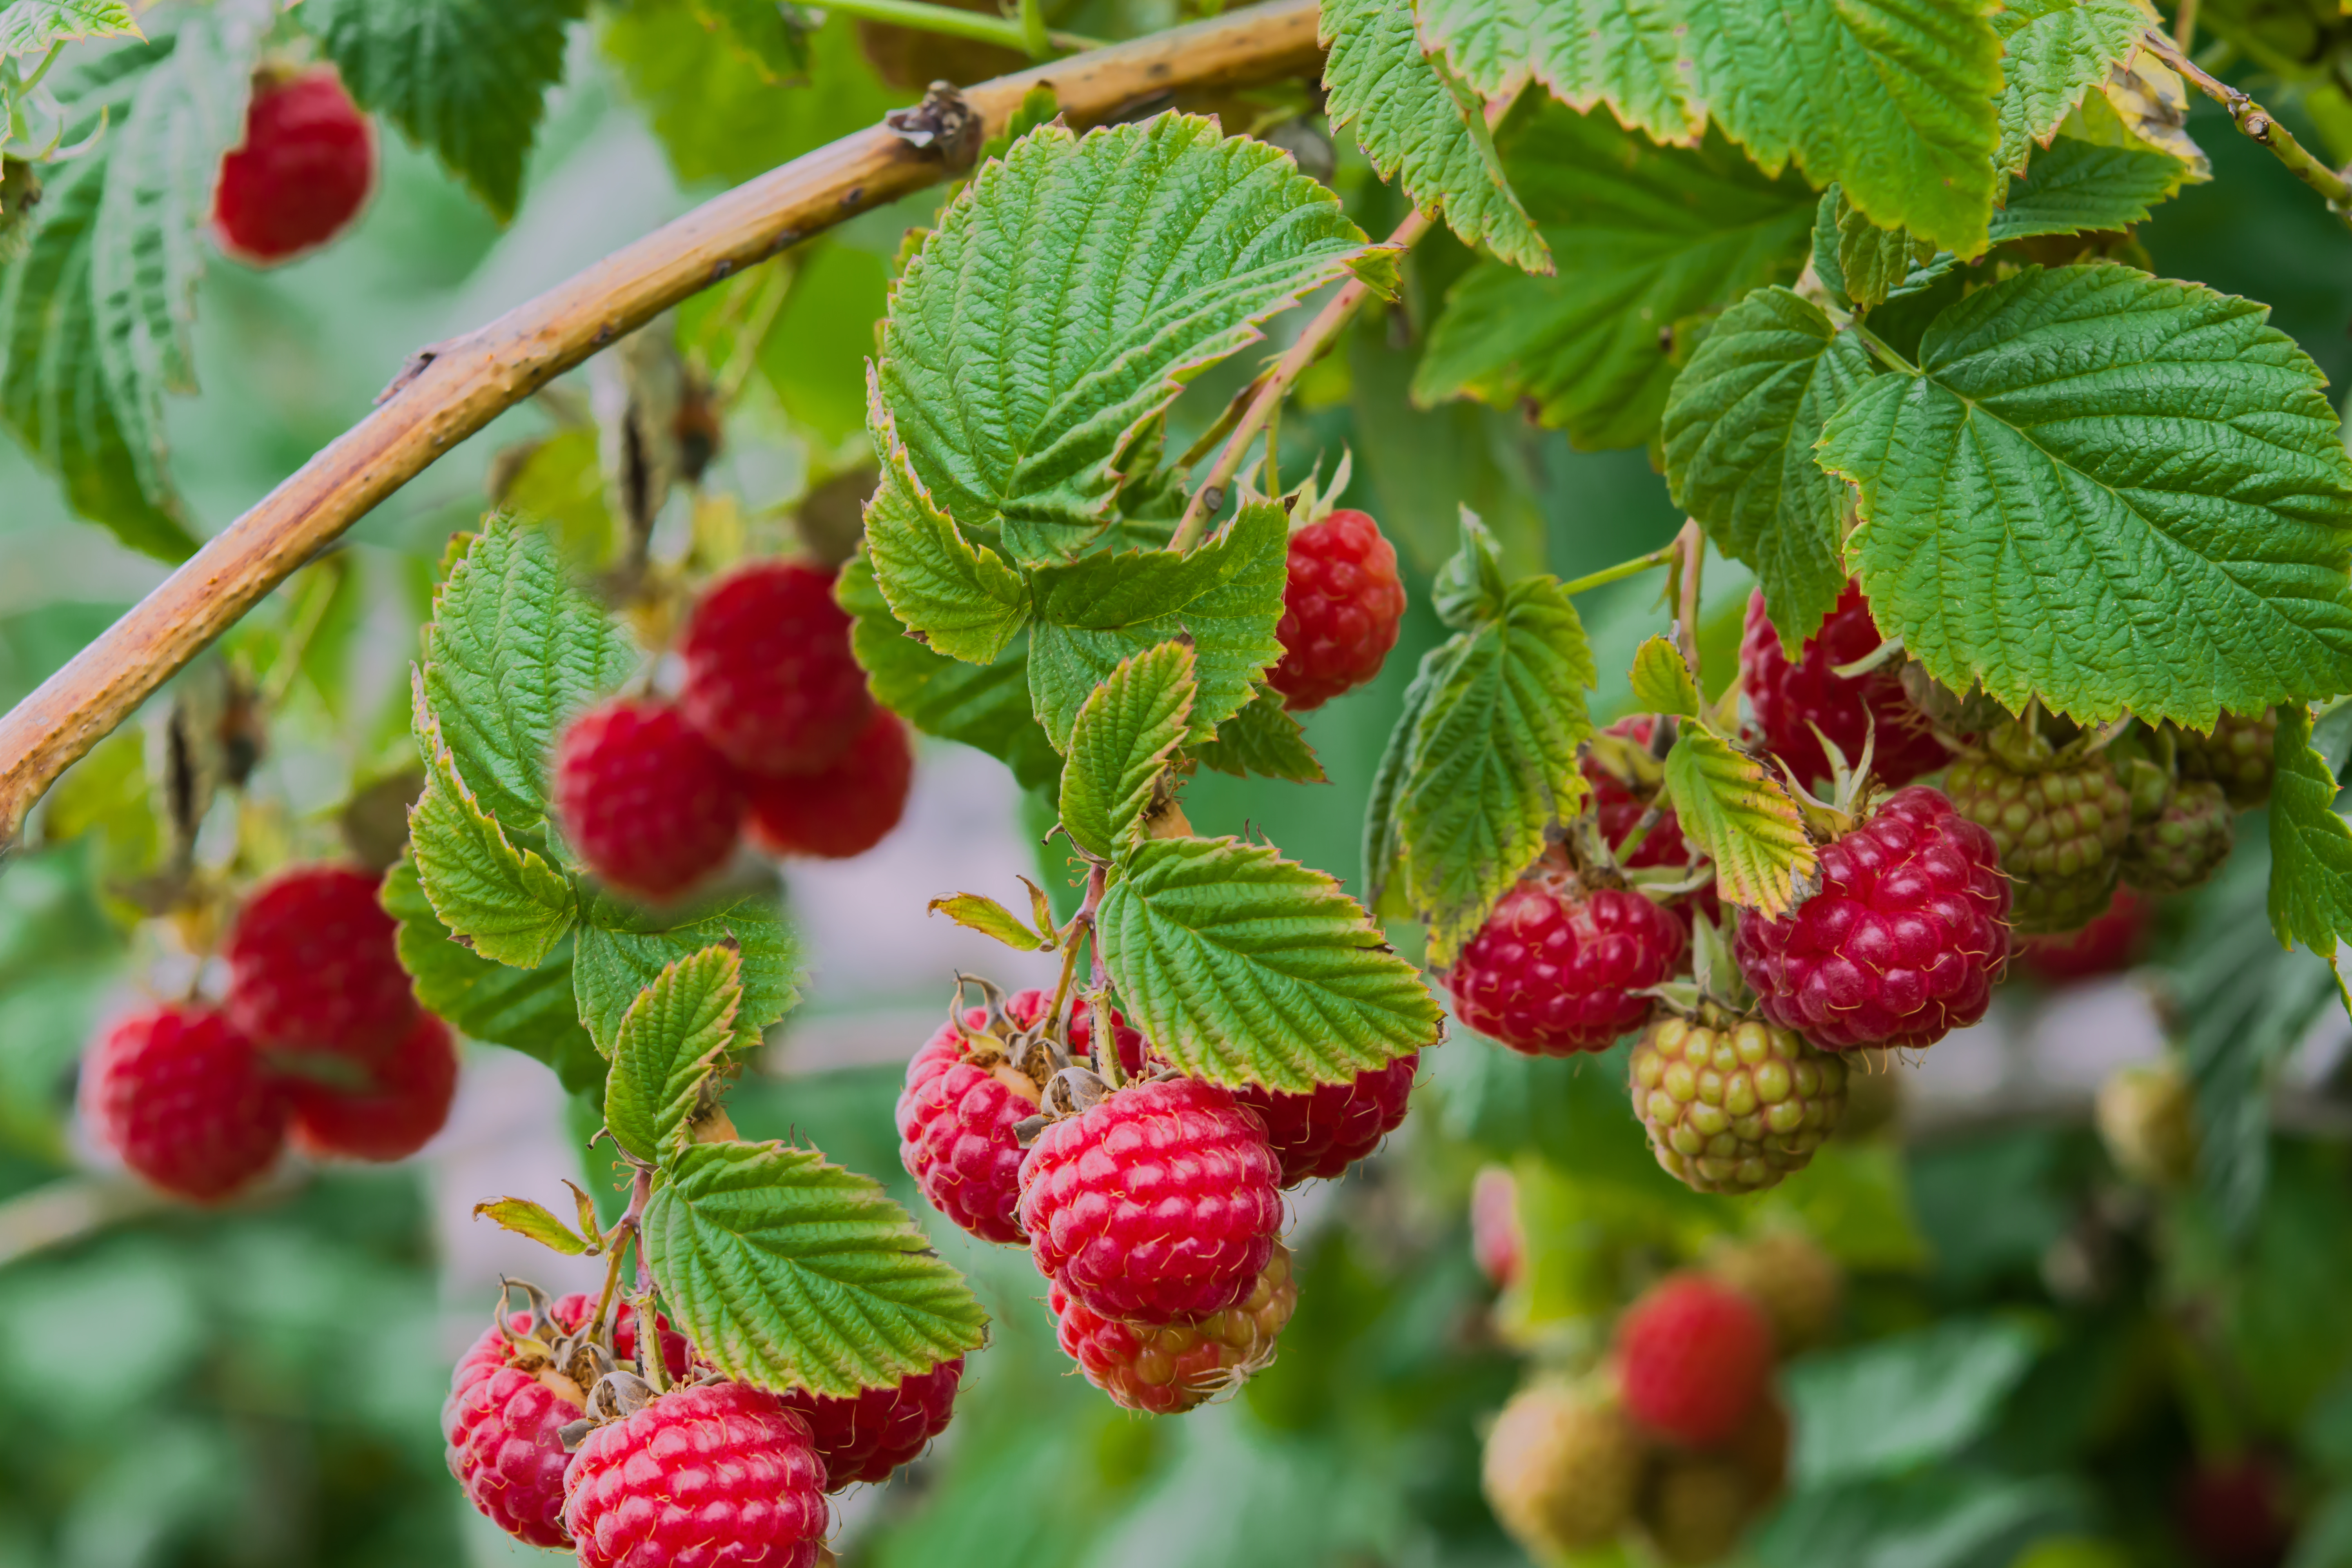 How to Grow Raspberries From Seeds | Home Guides | SF Gate